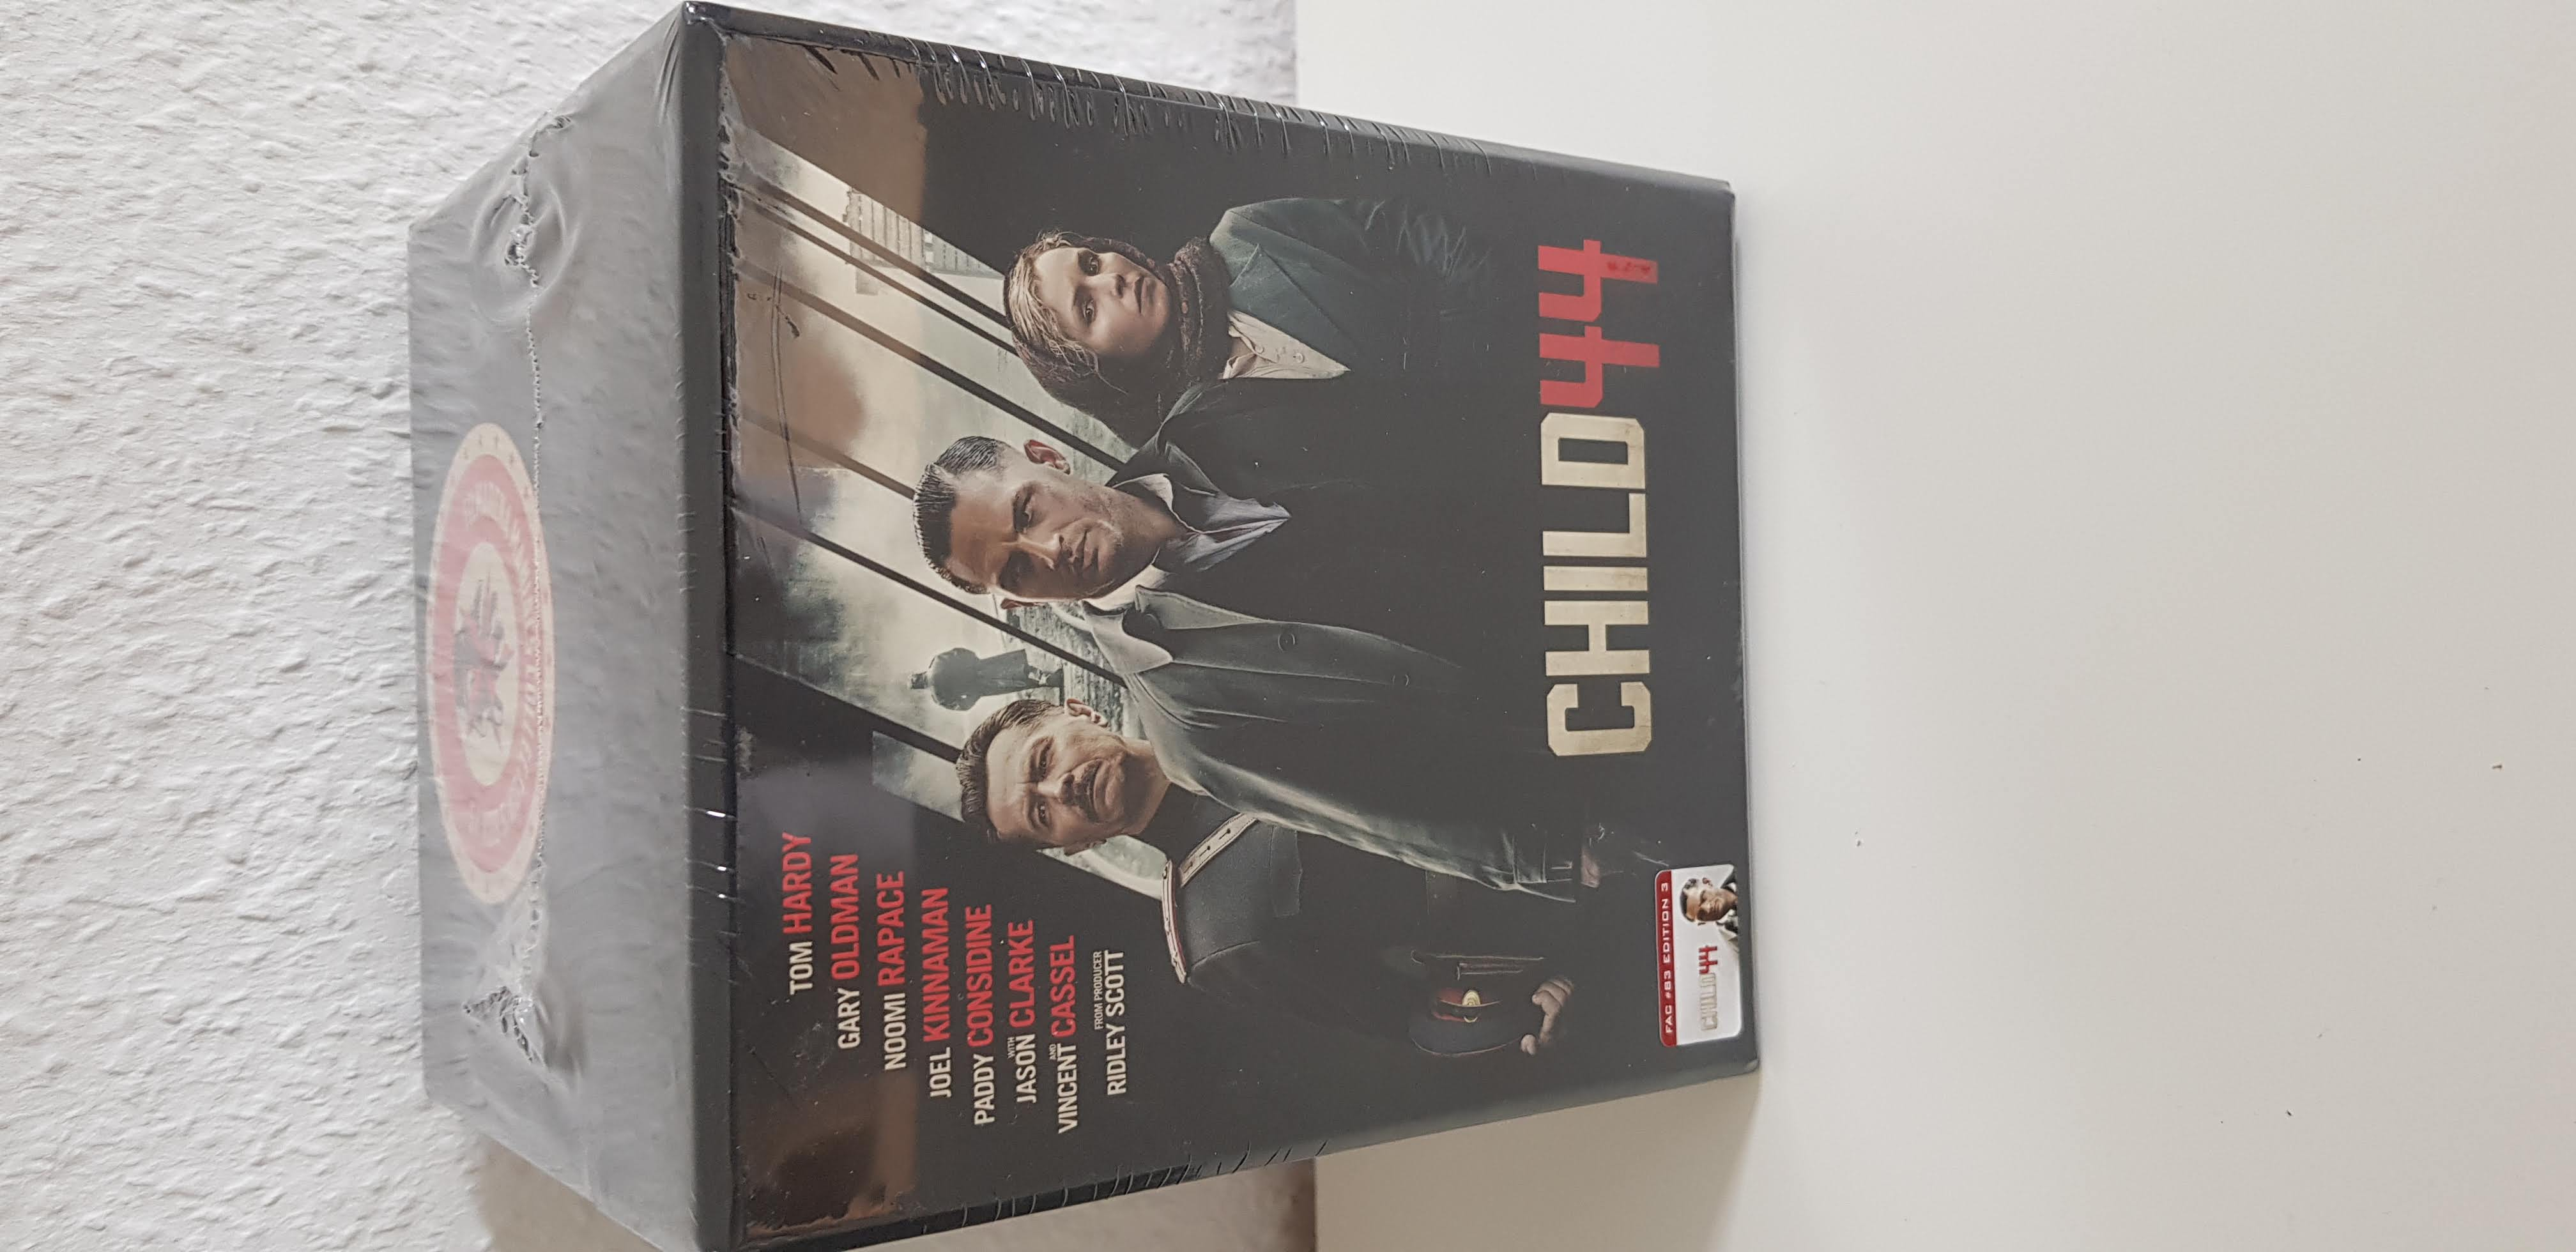 Child 44 HD-FiChild 44 HD-Filmportal FAC 83 Edition 3 Empty Boxlmportal FAC 83 Edition 3 hardbox